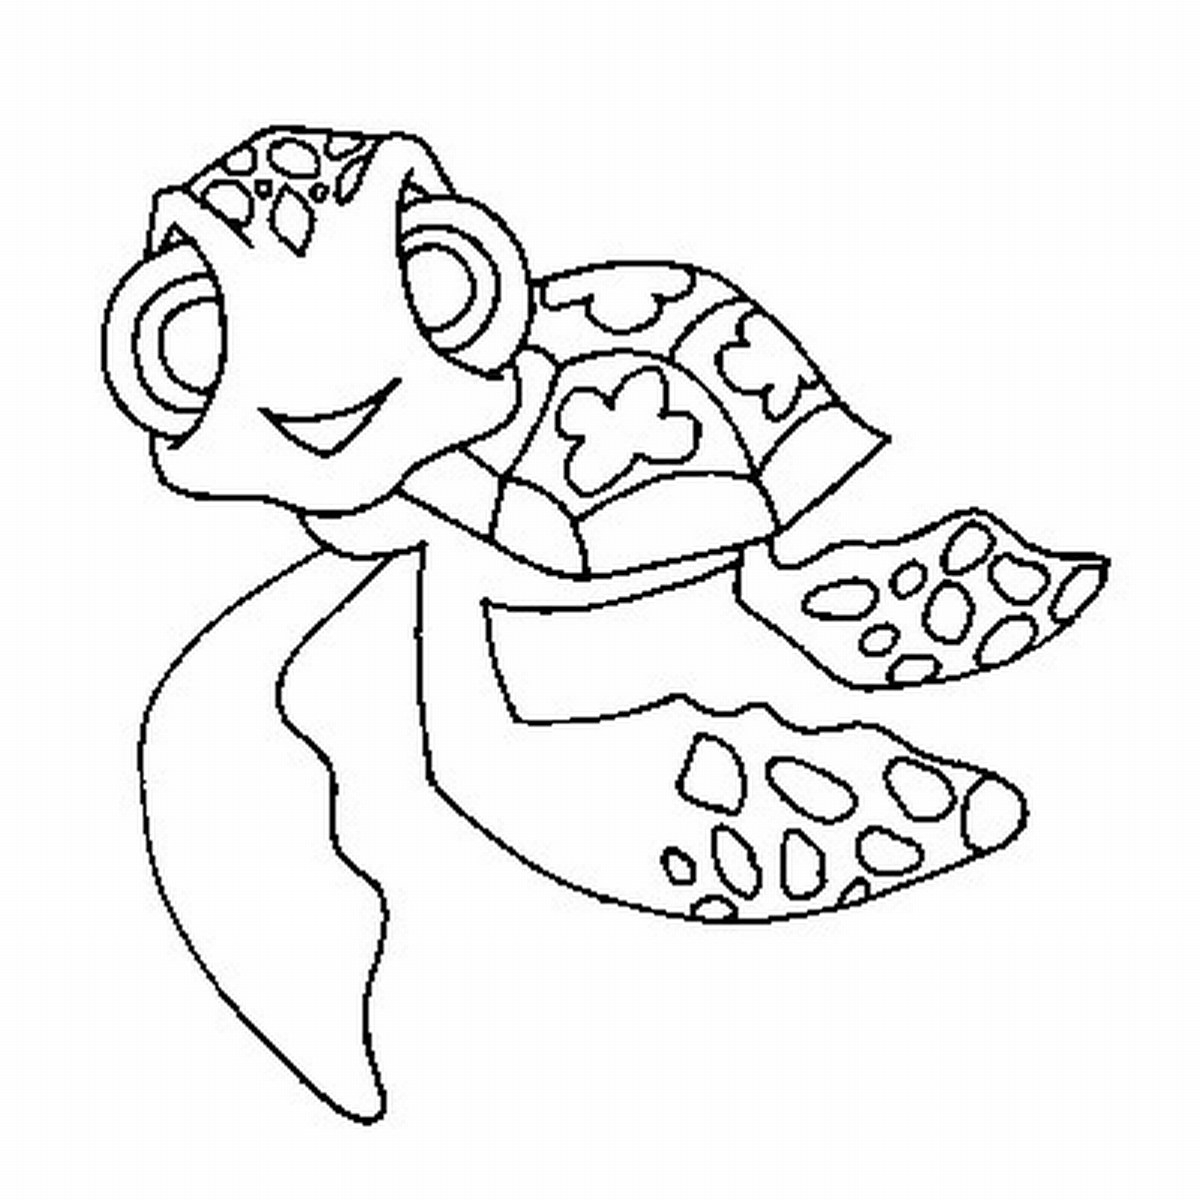 1200x1200 Simple Sea Turtle Drawing Sea Turtle Coloring Pages